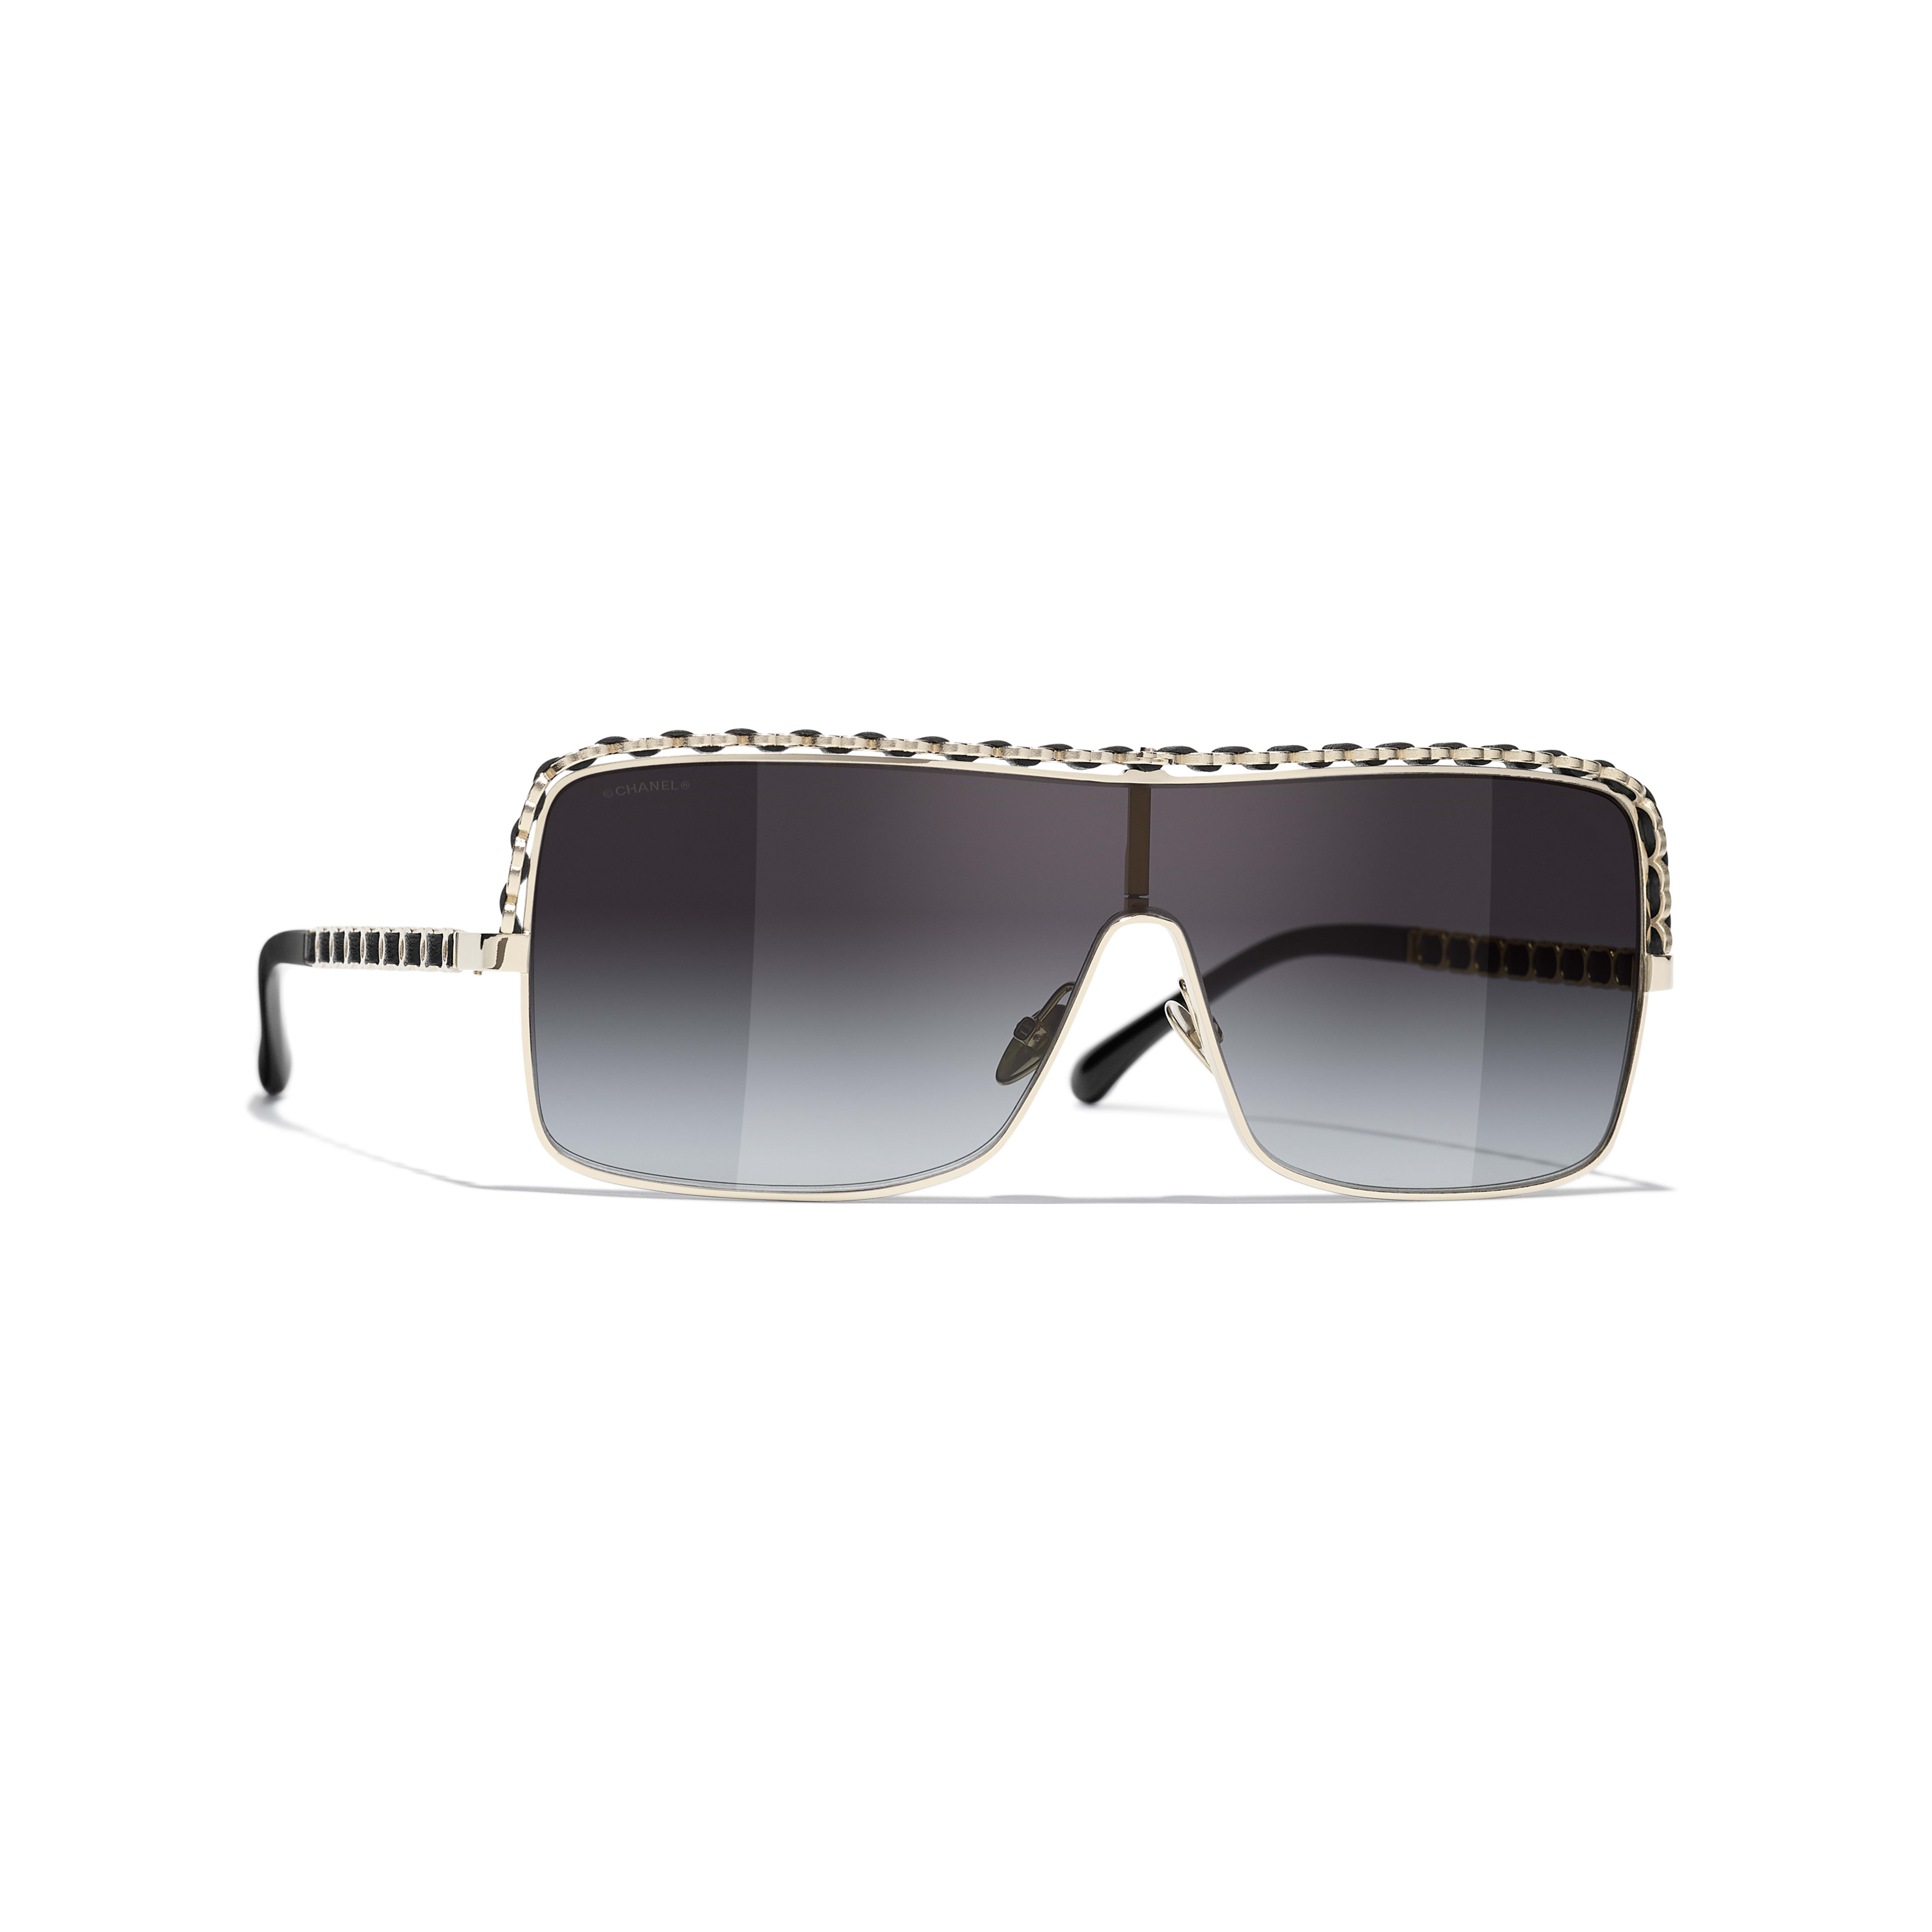 Shield Sunglasses - Gold - Metal & Calfskin - CHANEL - Default view - see standard sized version